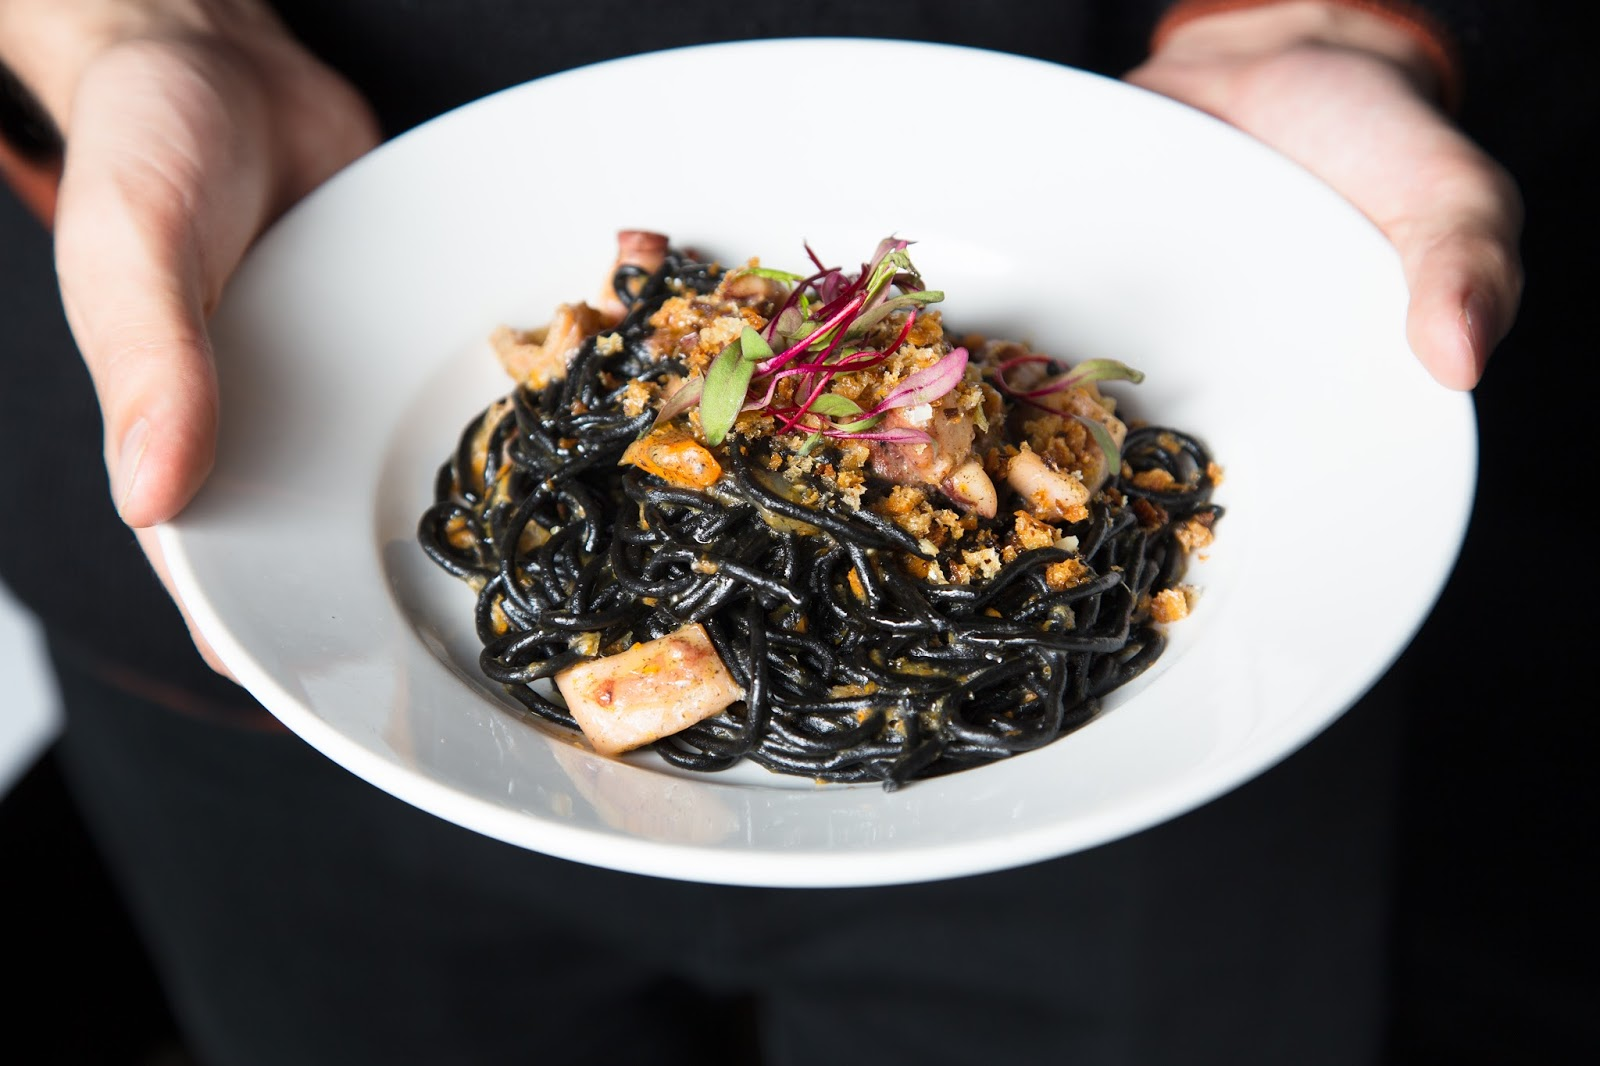 Eating Fabulously, Christopher Stewart, Vinateria, Chatting Fabulously with Yvette Leeper-Bueno, Vinateria in Harlem, Harlem Restaurants, Restaurants in Harlem,